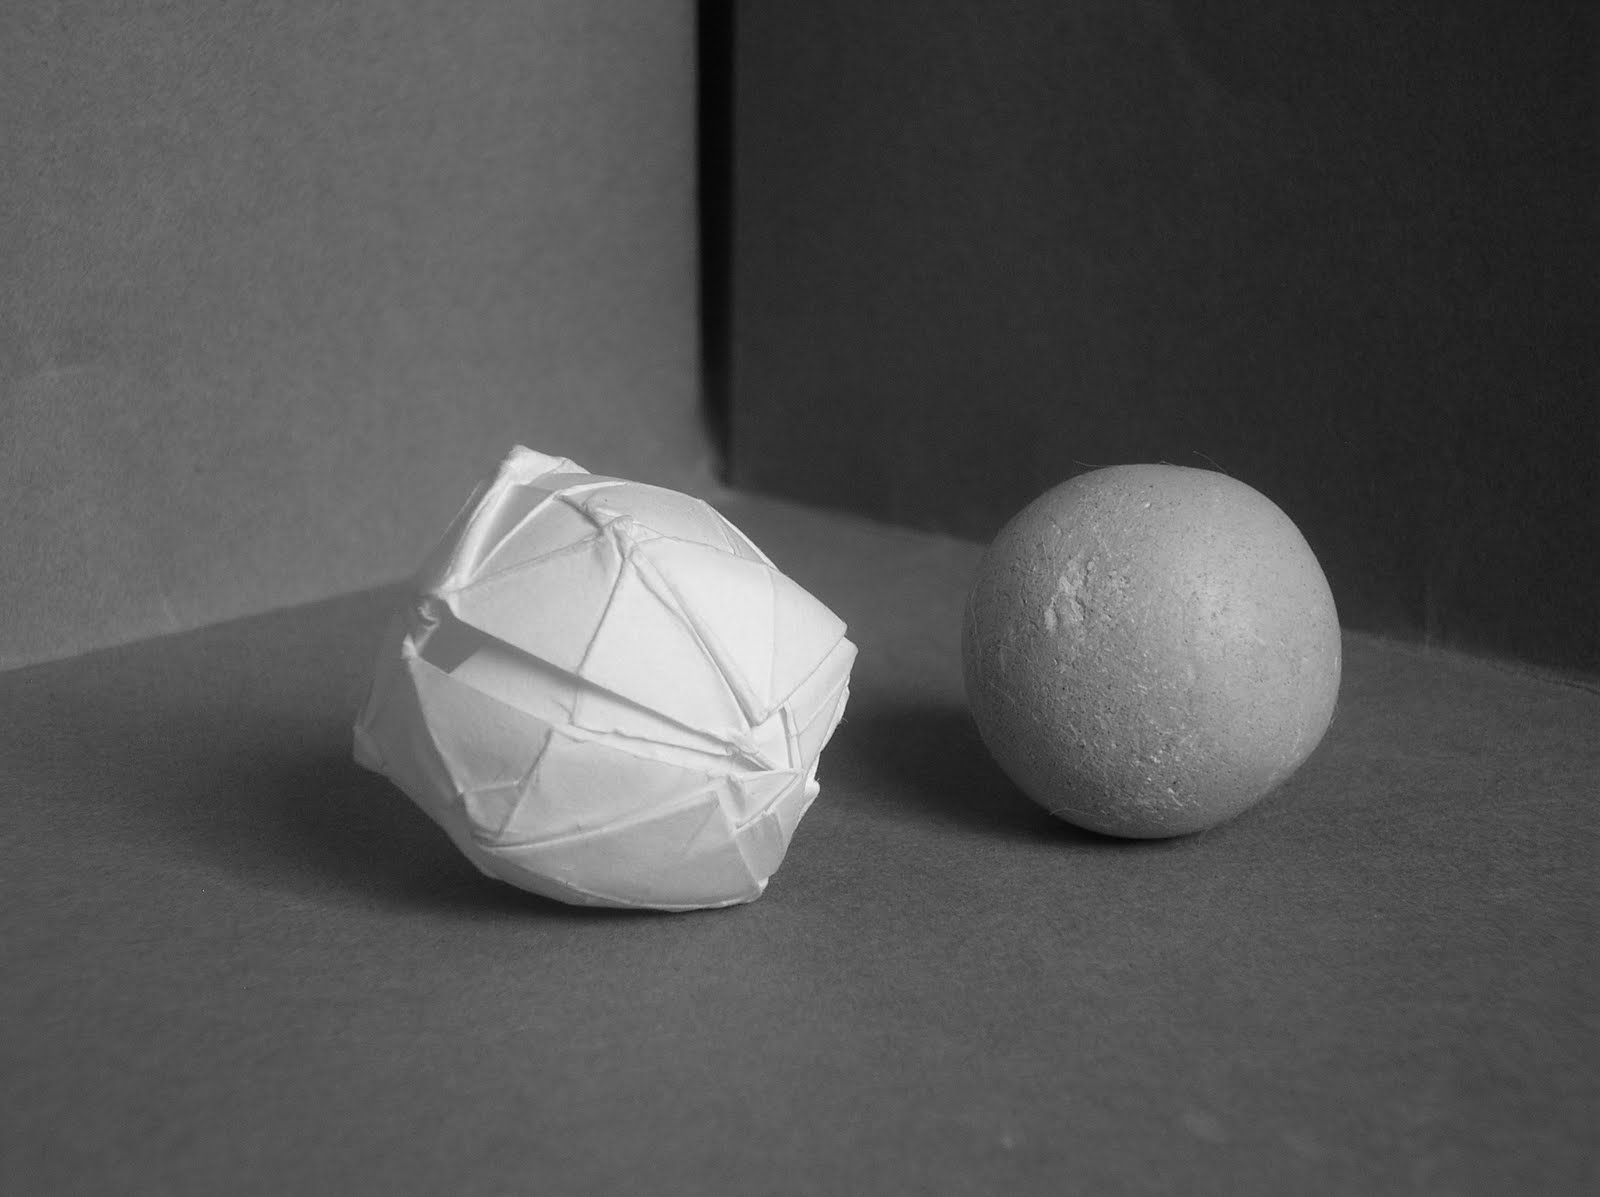 memo cube: Chaos 3: The Origami Sphere 1 - photo#5